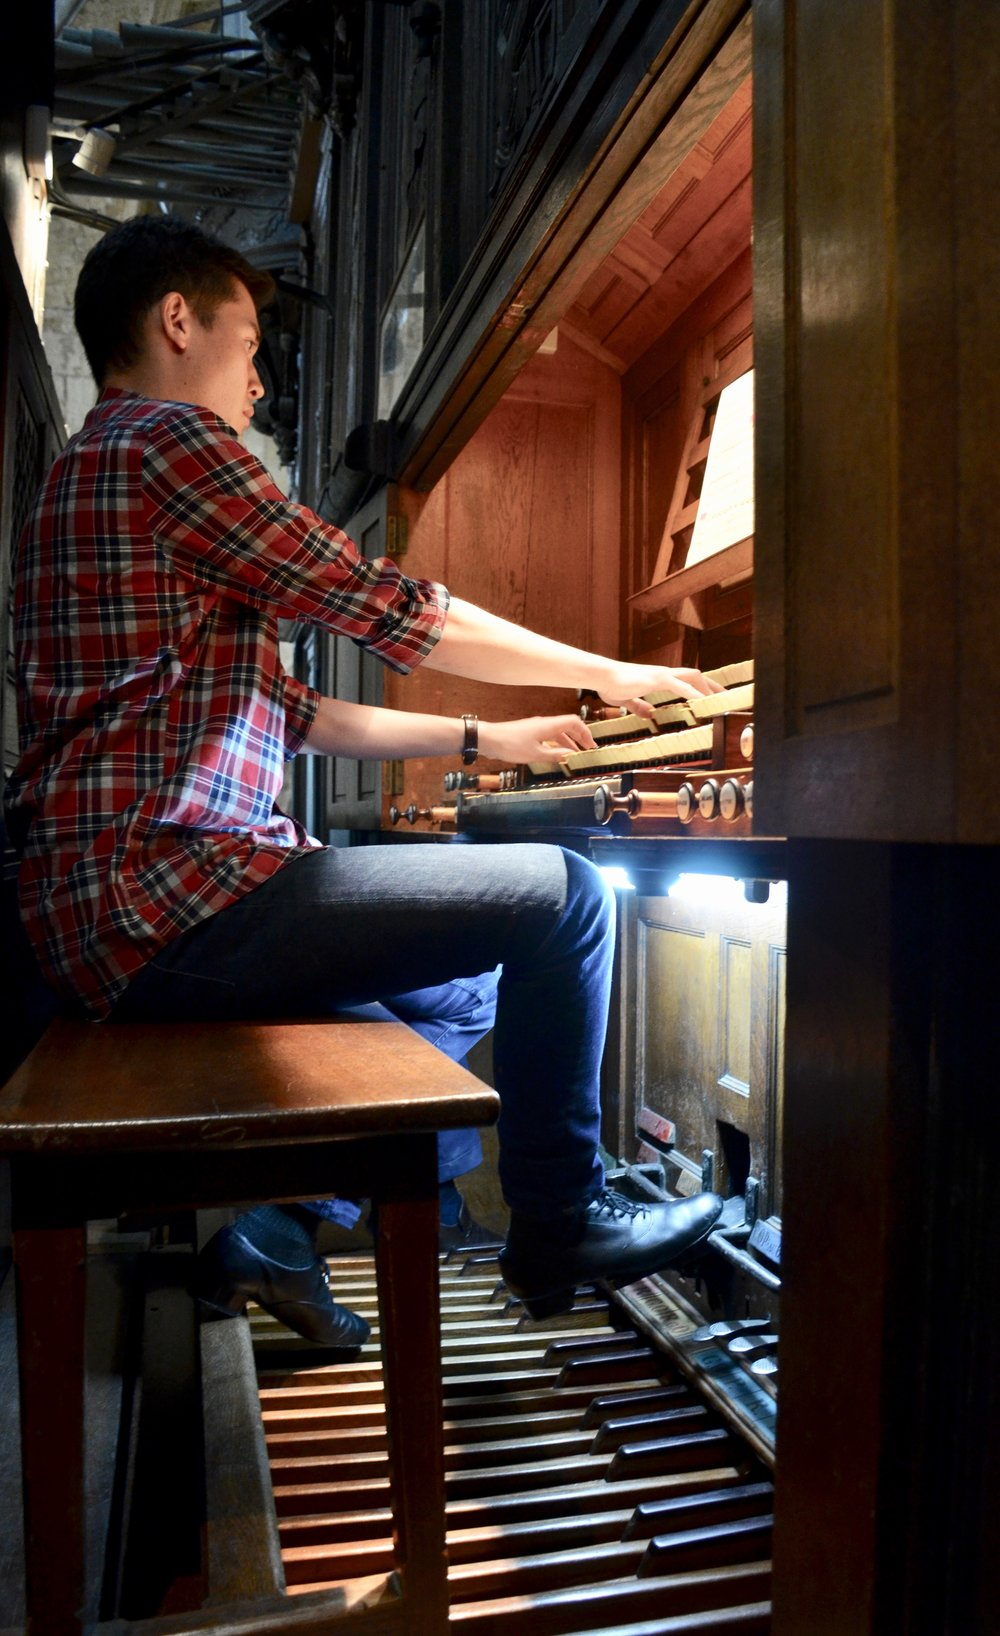 Noel plays Duruflé's Prelude and Fugue on ALAIN - St. Ouen in Rouen, France - Boston Organ Studio